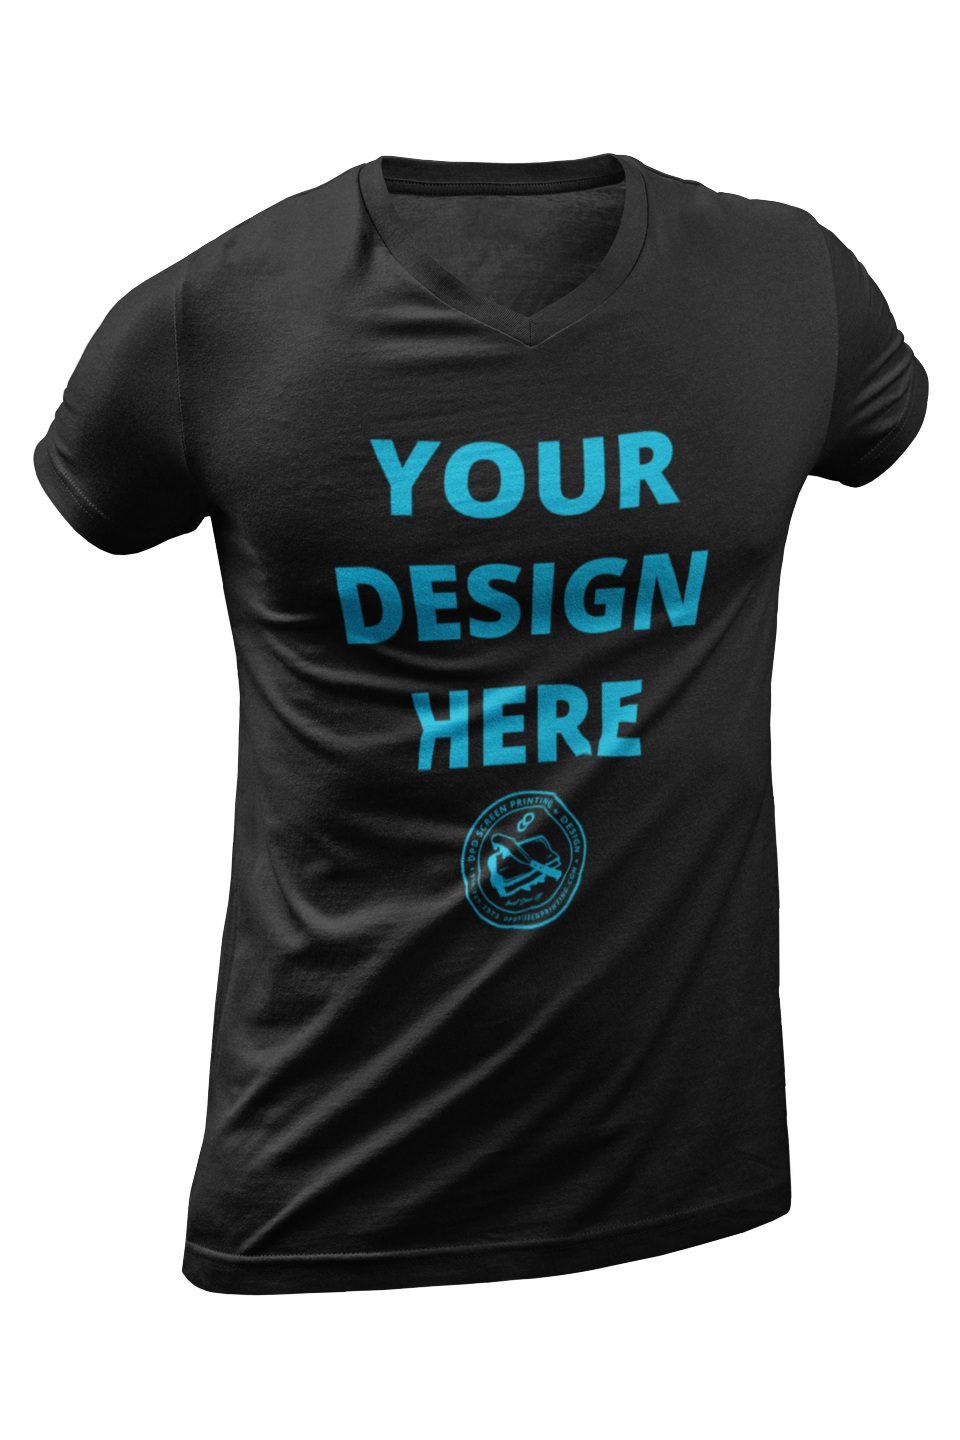 T-Shirt Printing - Workplace uniforms, promotional shirts, custom brands, family reunions, school or fundraiser functions. Low Minimums and competitive pricing, DPD has you covered!